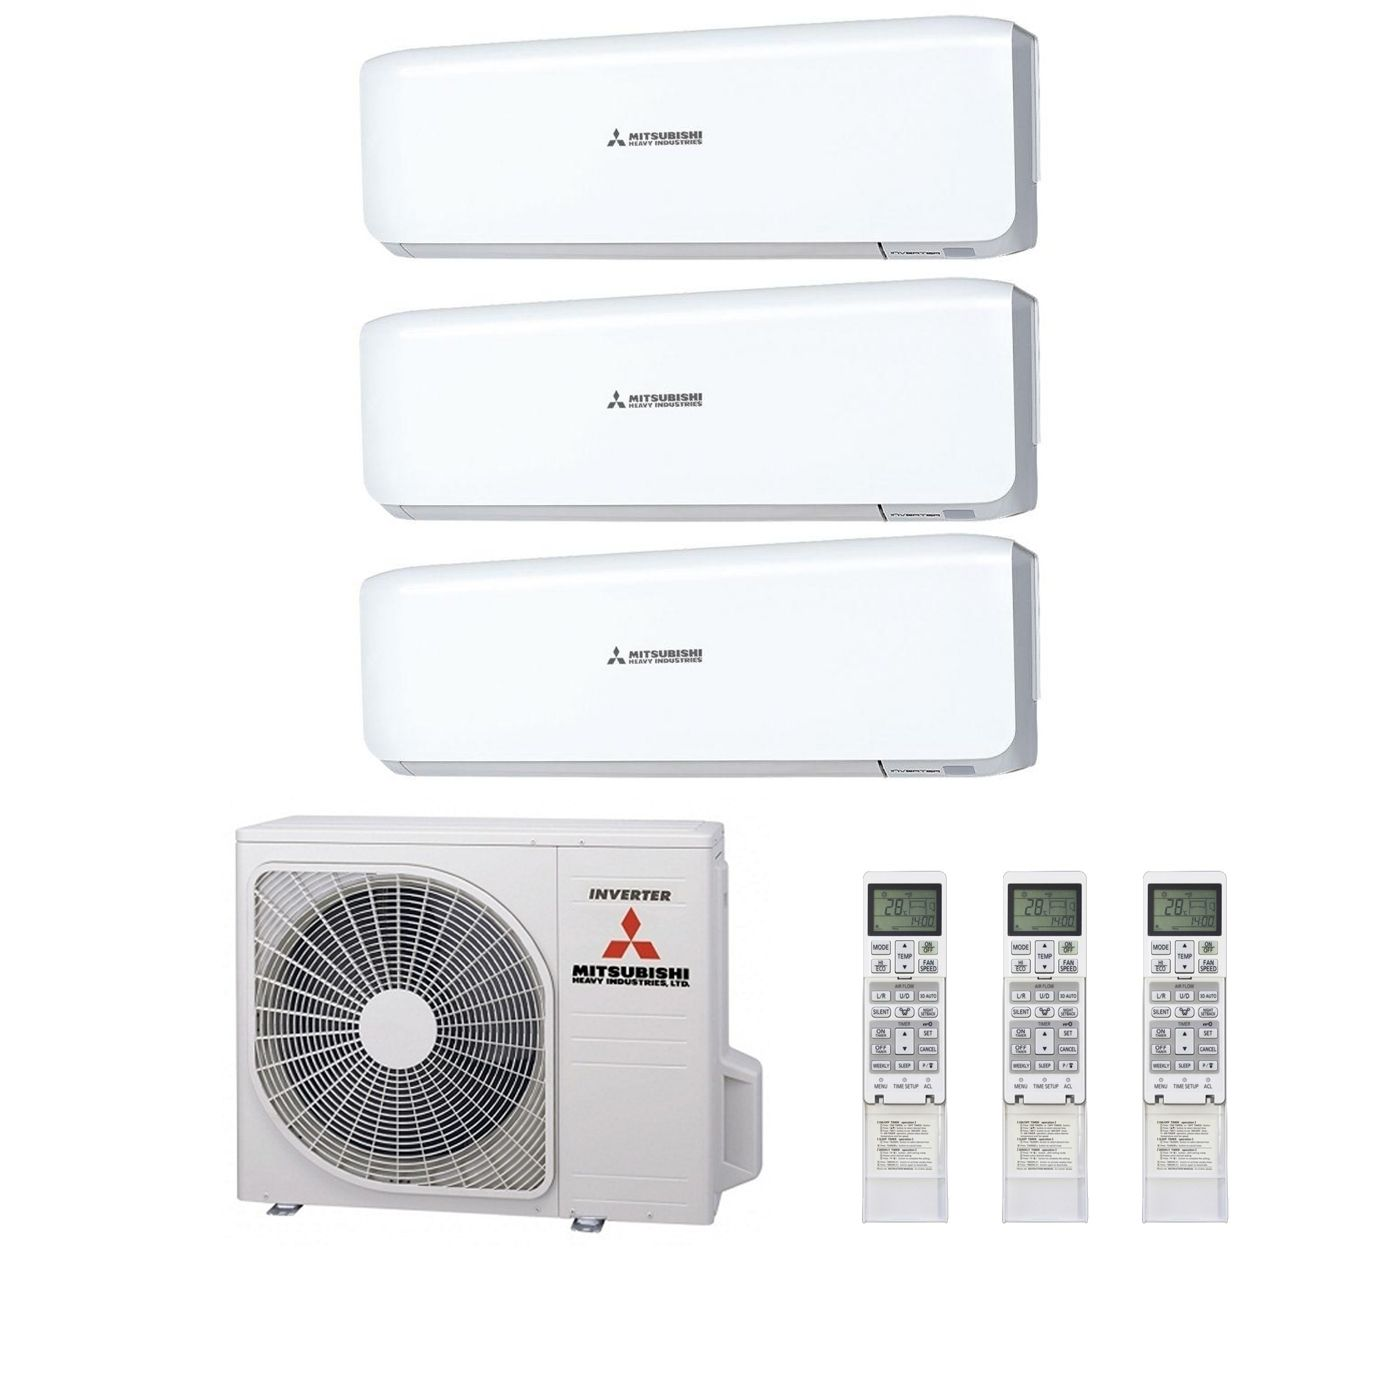 Mitsubishi Room Air Conditioner Reviews: Mitsubishi Heavy Industries Air Conditioning SCM60ZM-S